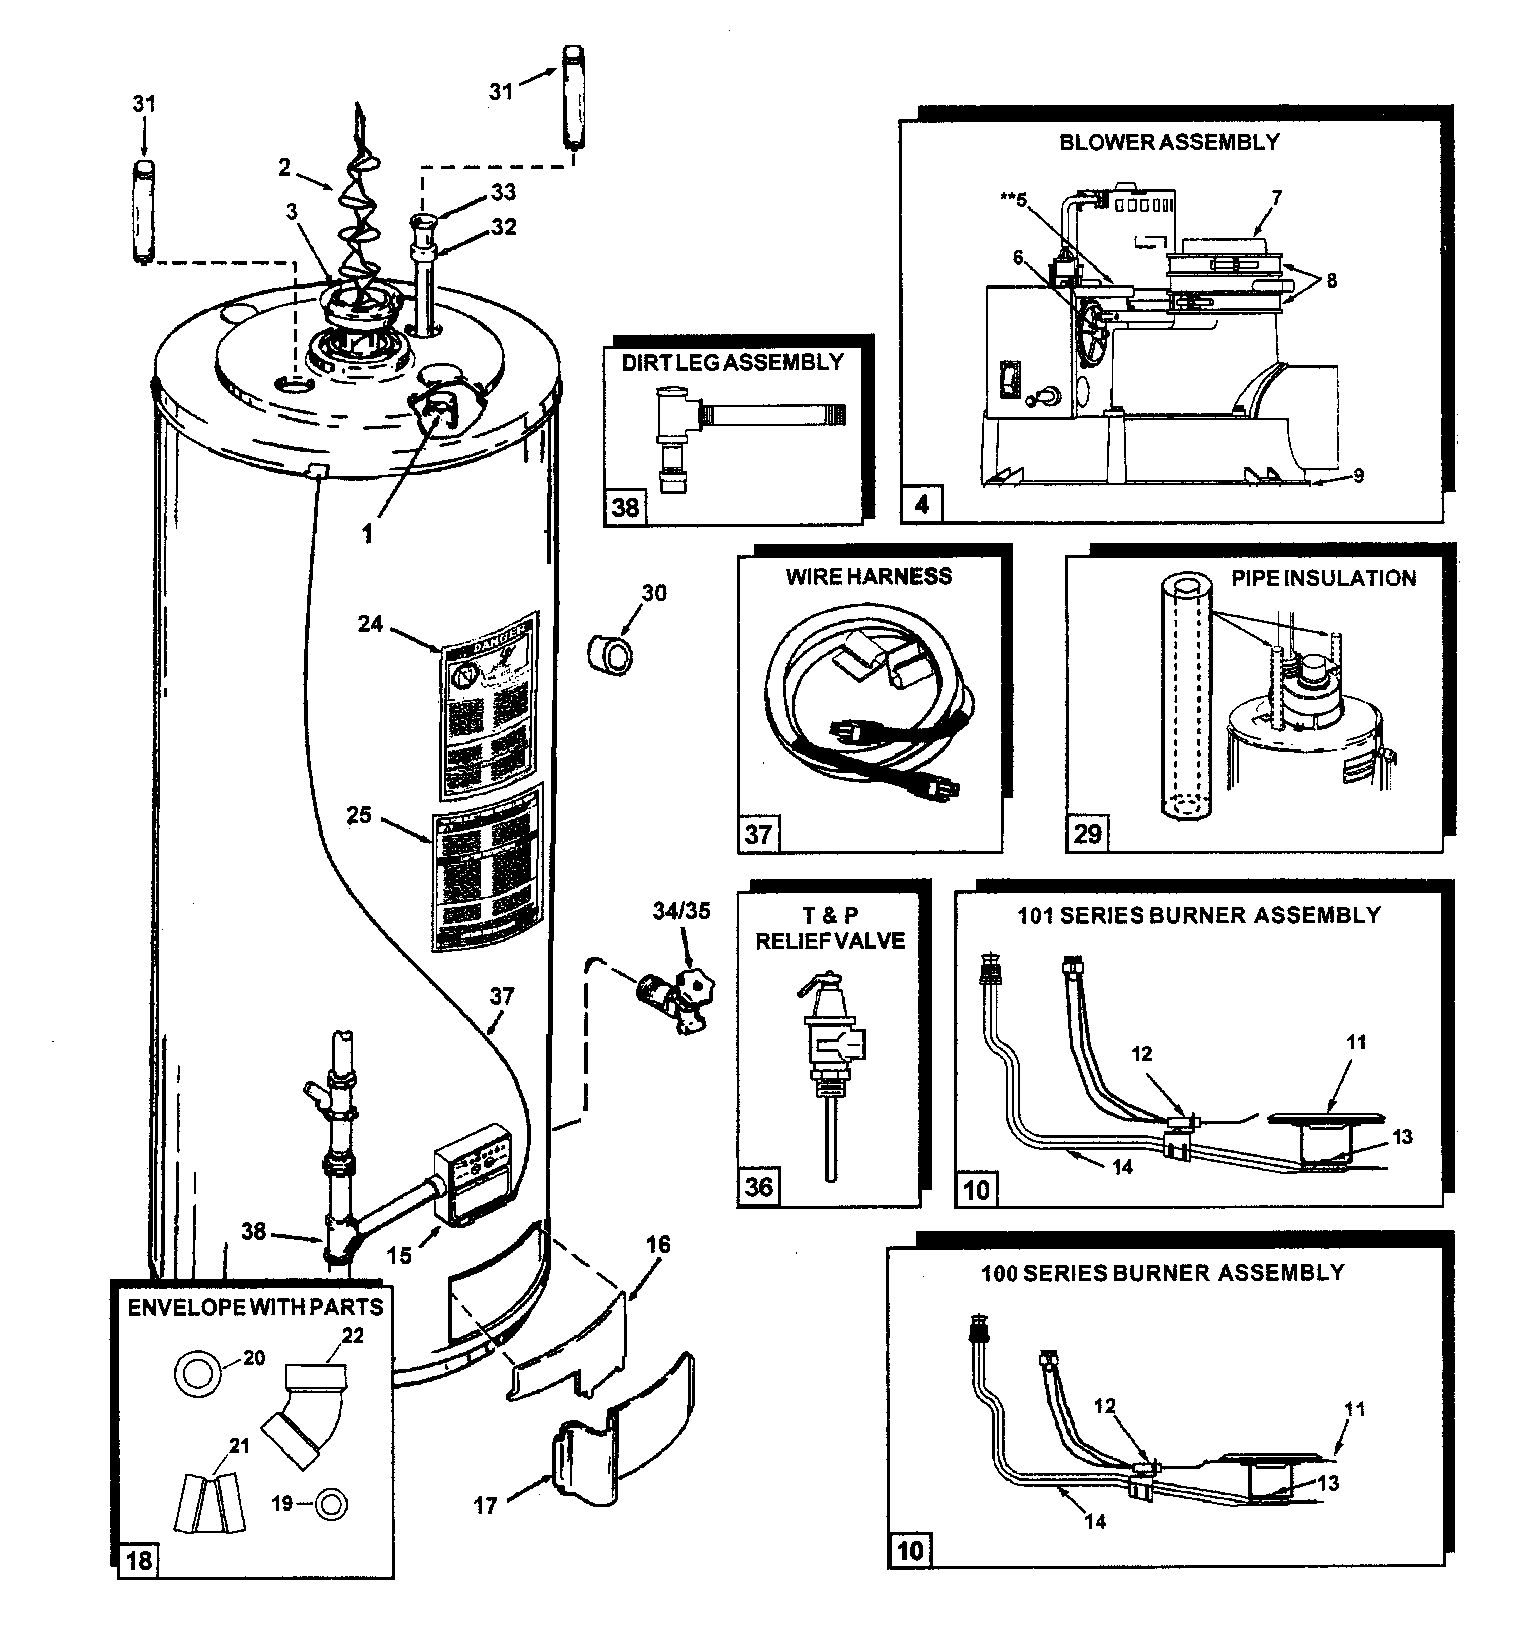 WATER HEATER Diagram & Parts List for Model pr650ccvit2